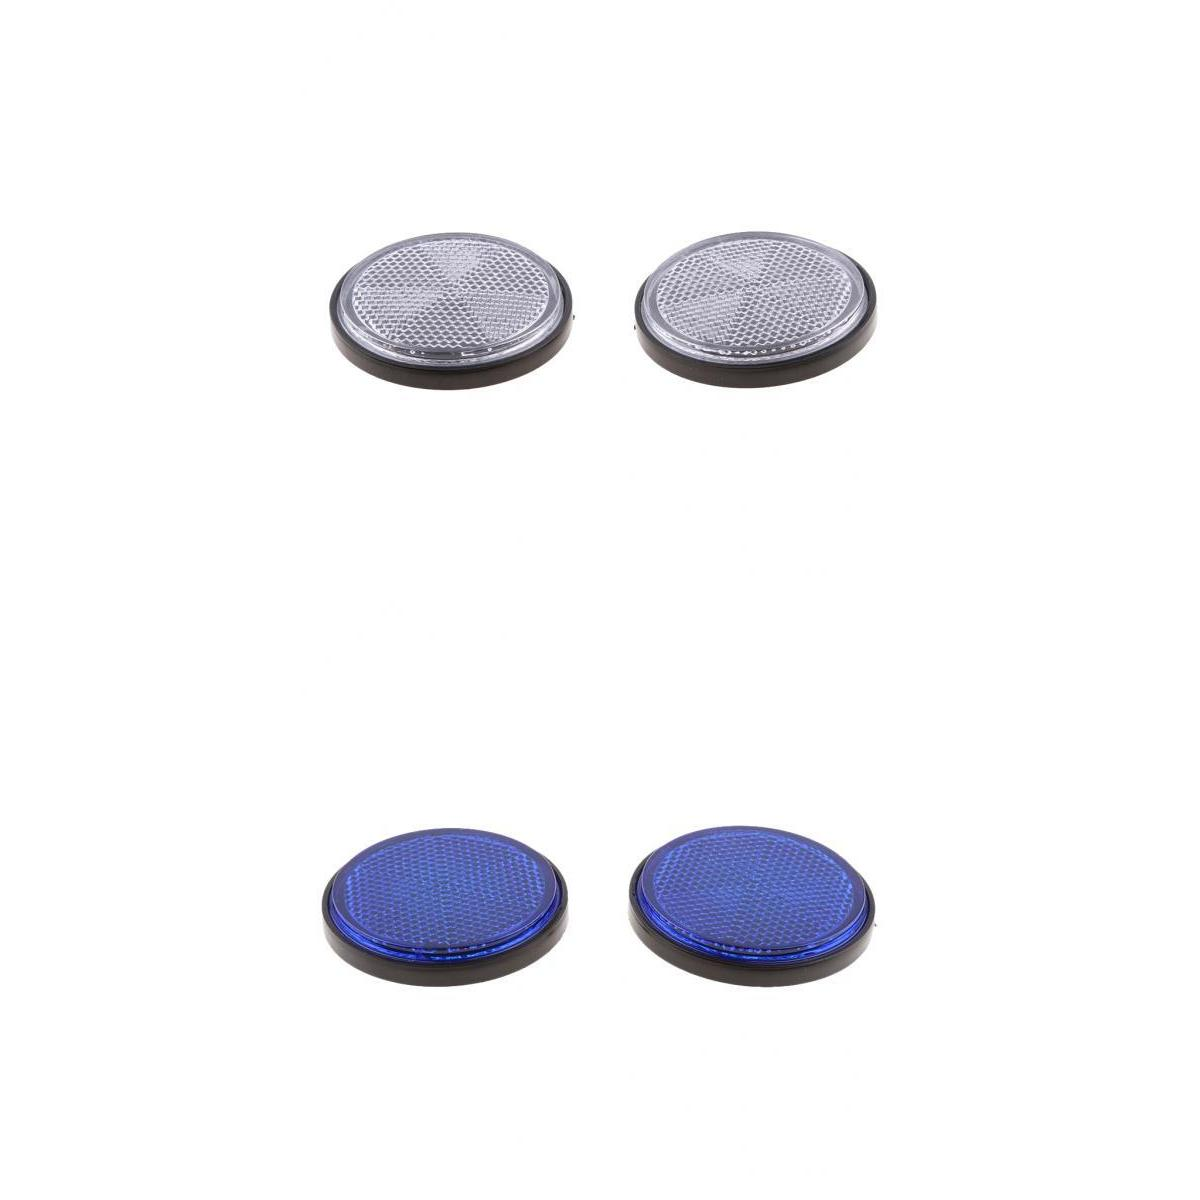 Silver & Blue Round Reflectors Reflective Universal For Motorcycle Dirt Bike